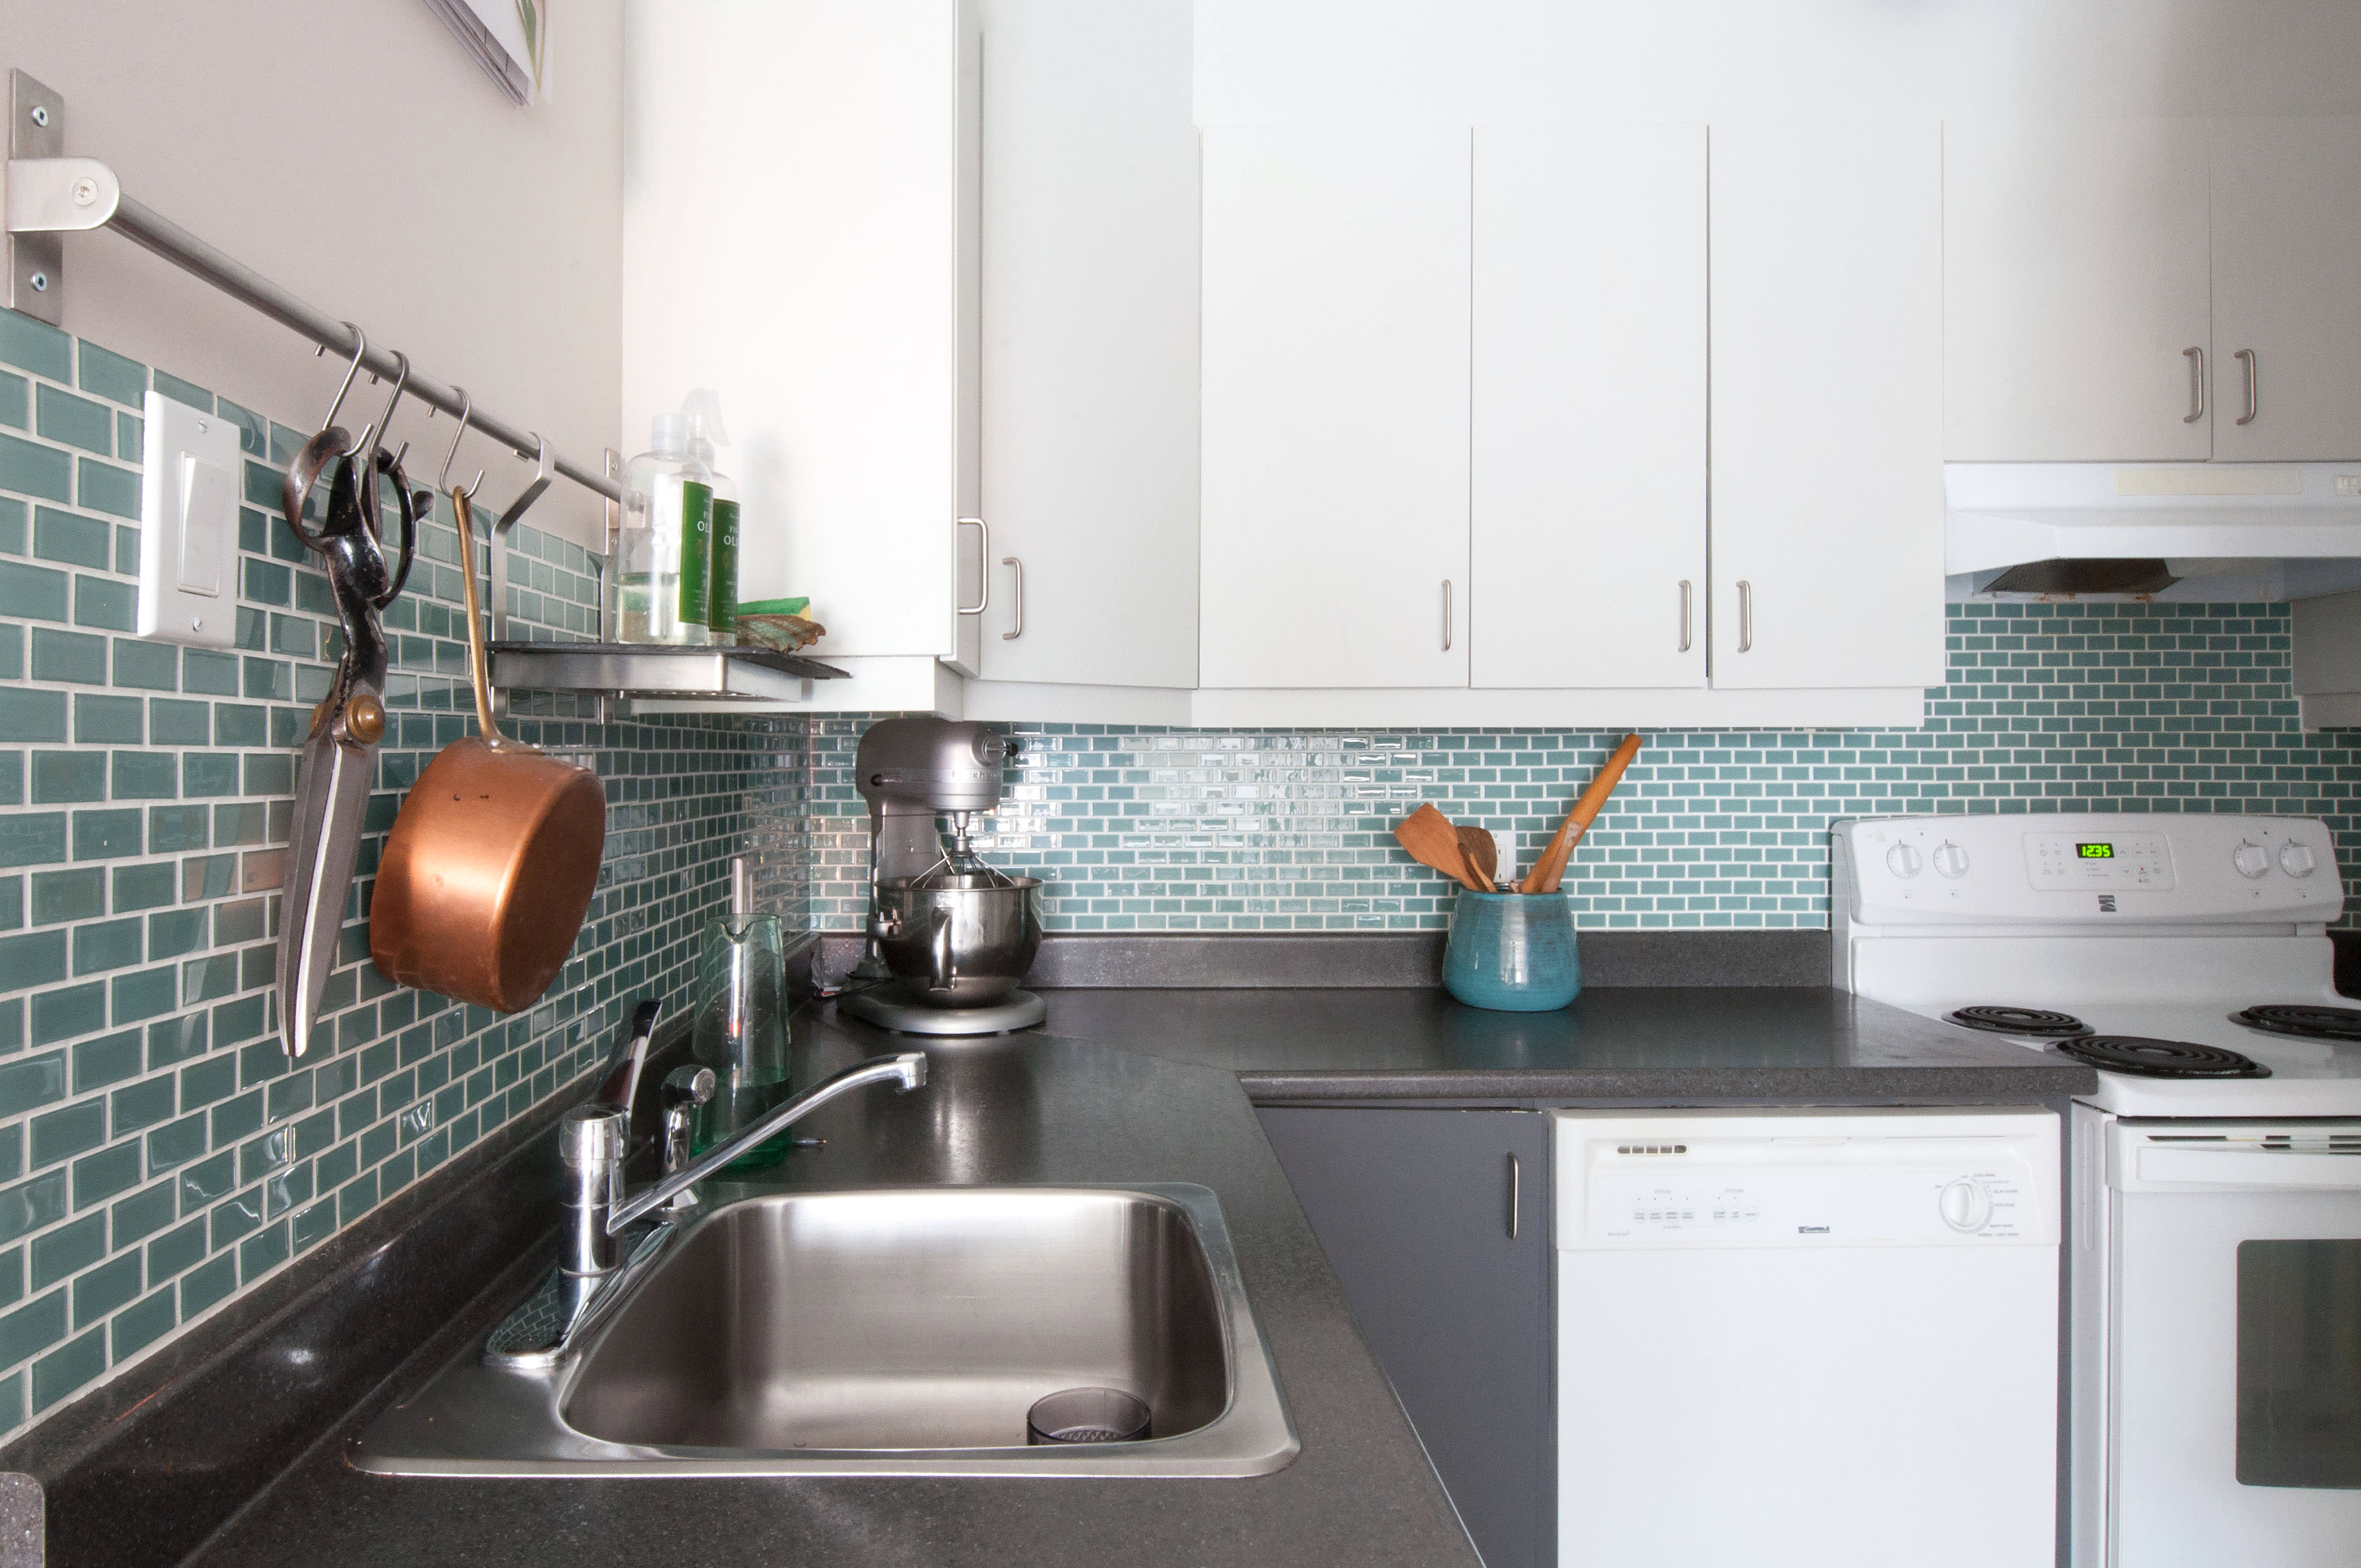 Exceptional Where To Buy Kitchen Cabinet Hardware: 10 Sources For Knobs And Pulls